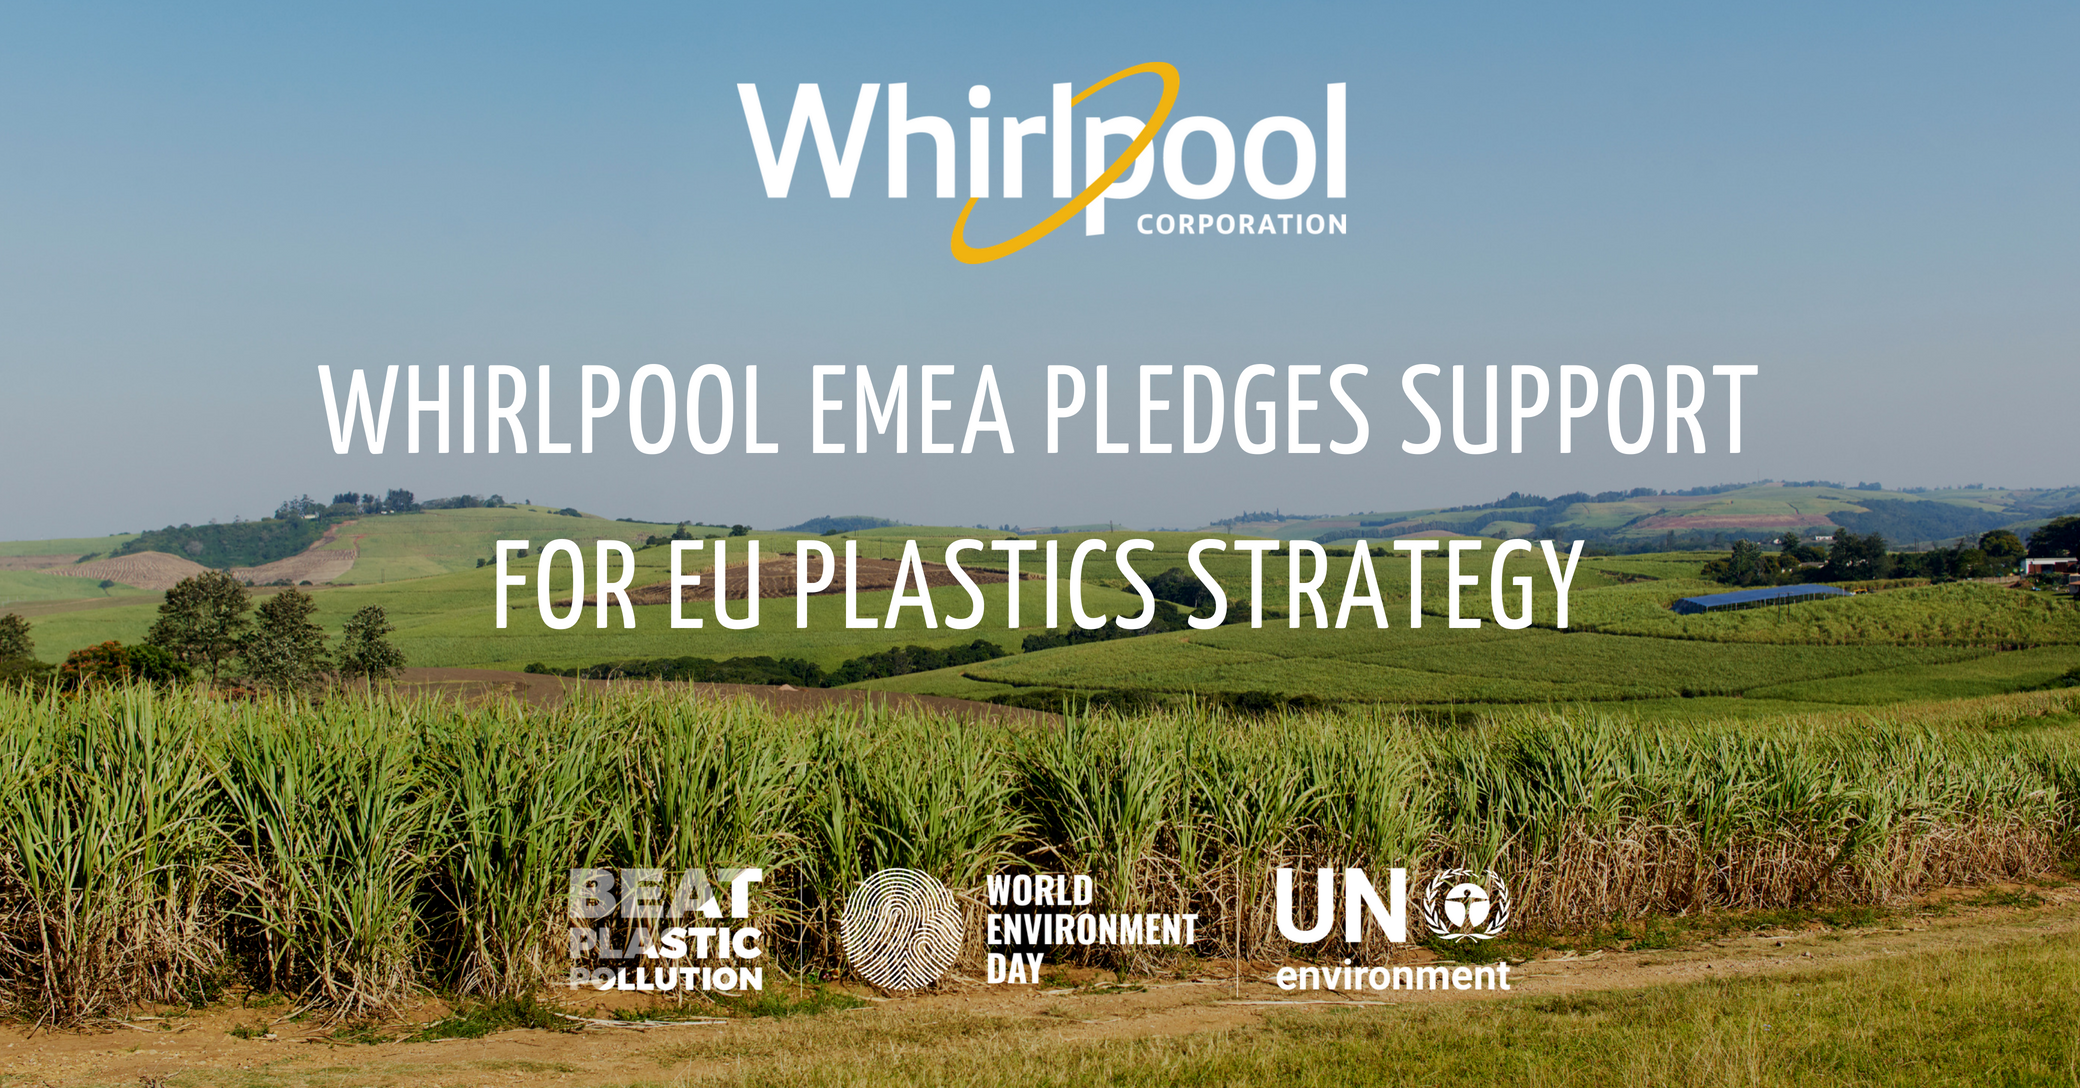 Whirlpool EMEA pledges support for EU Plastics Strategy